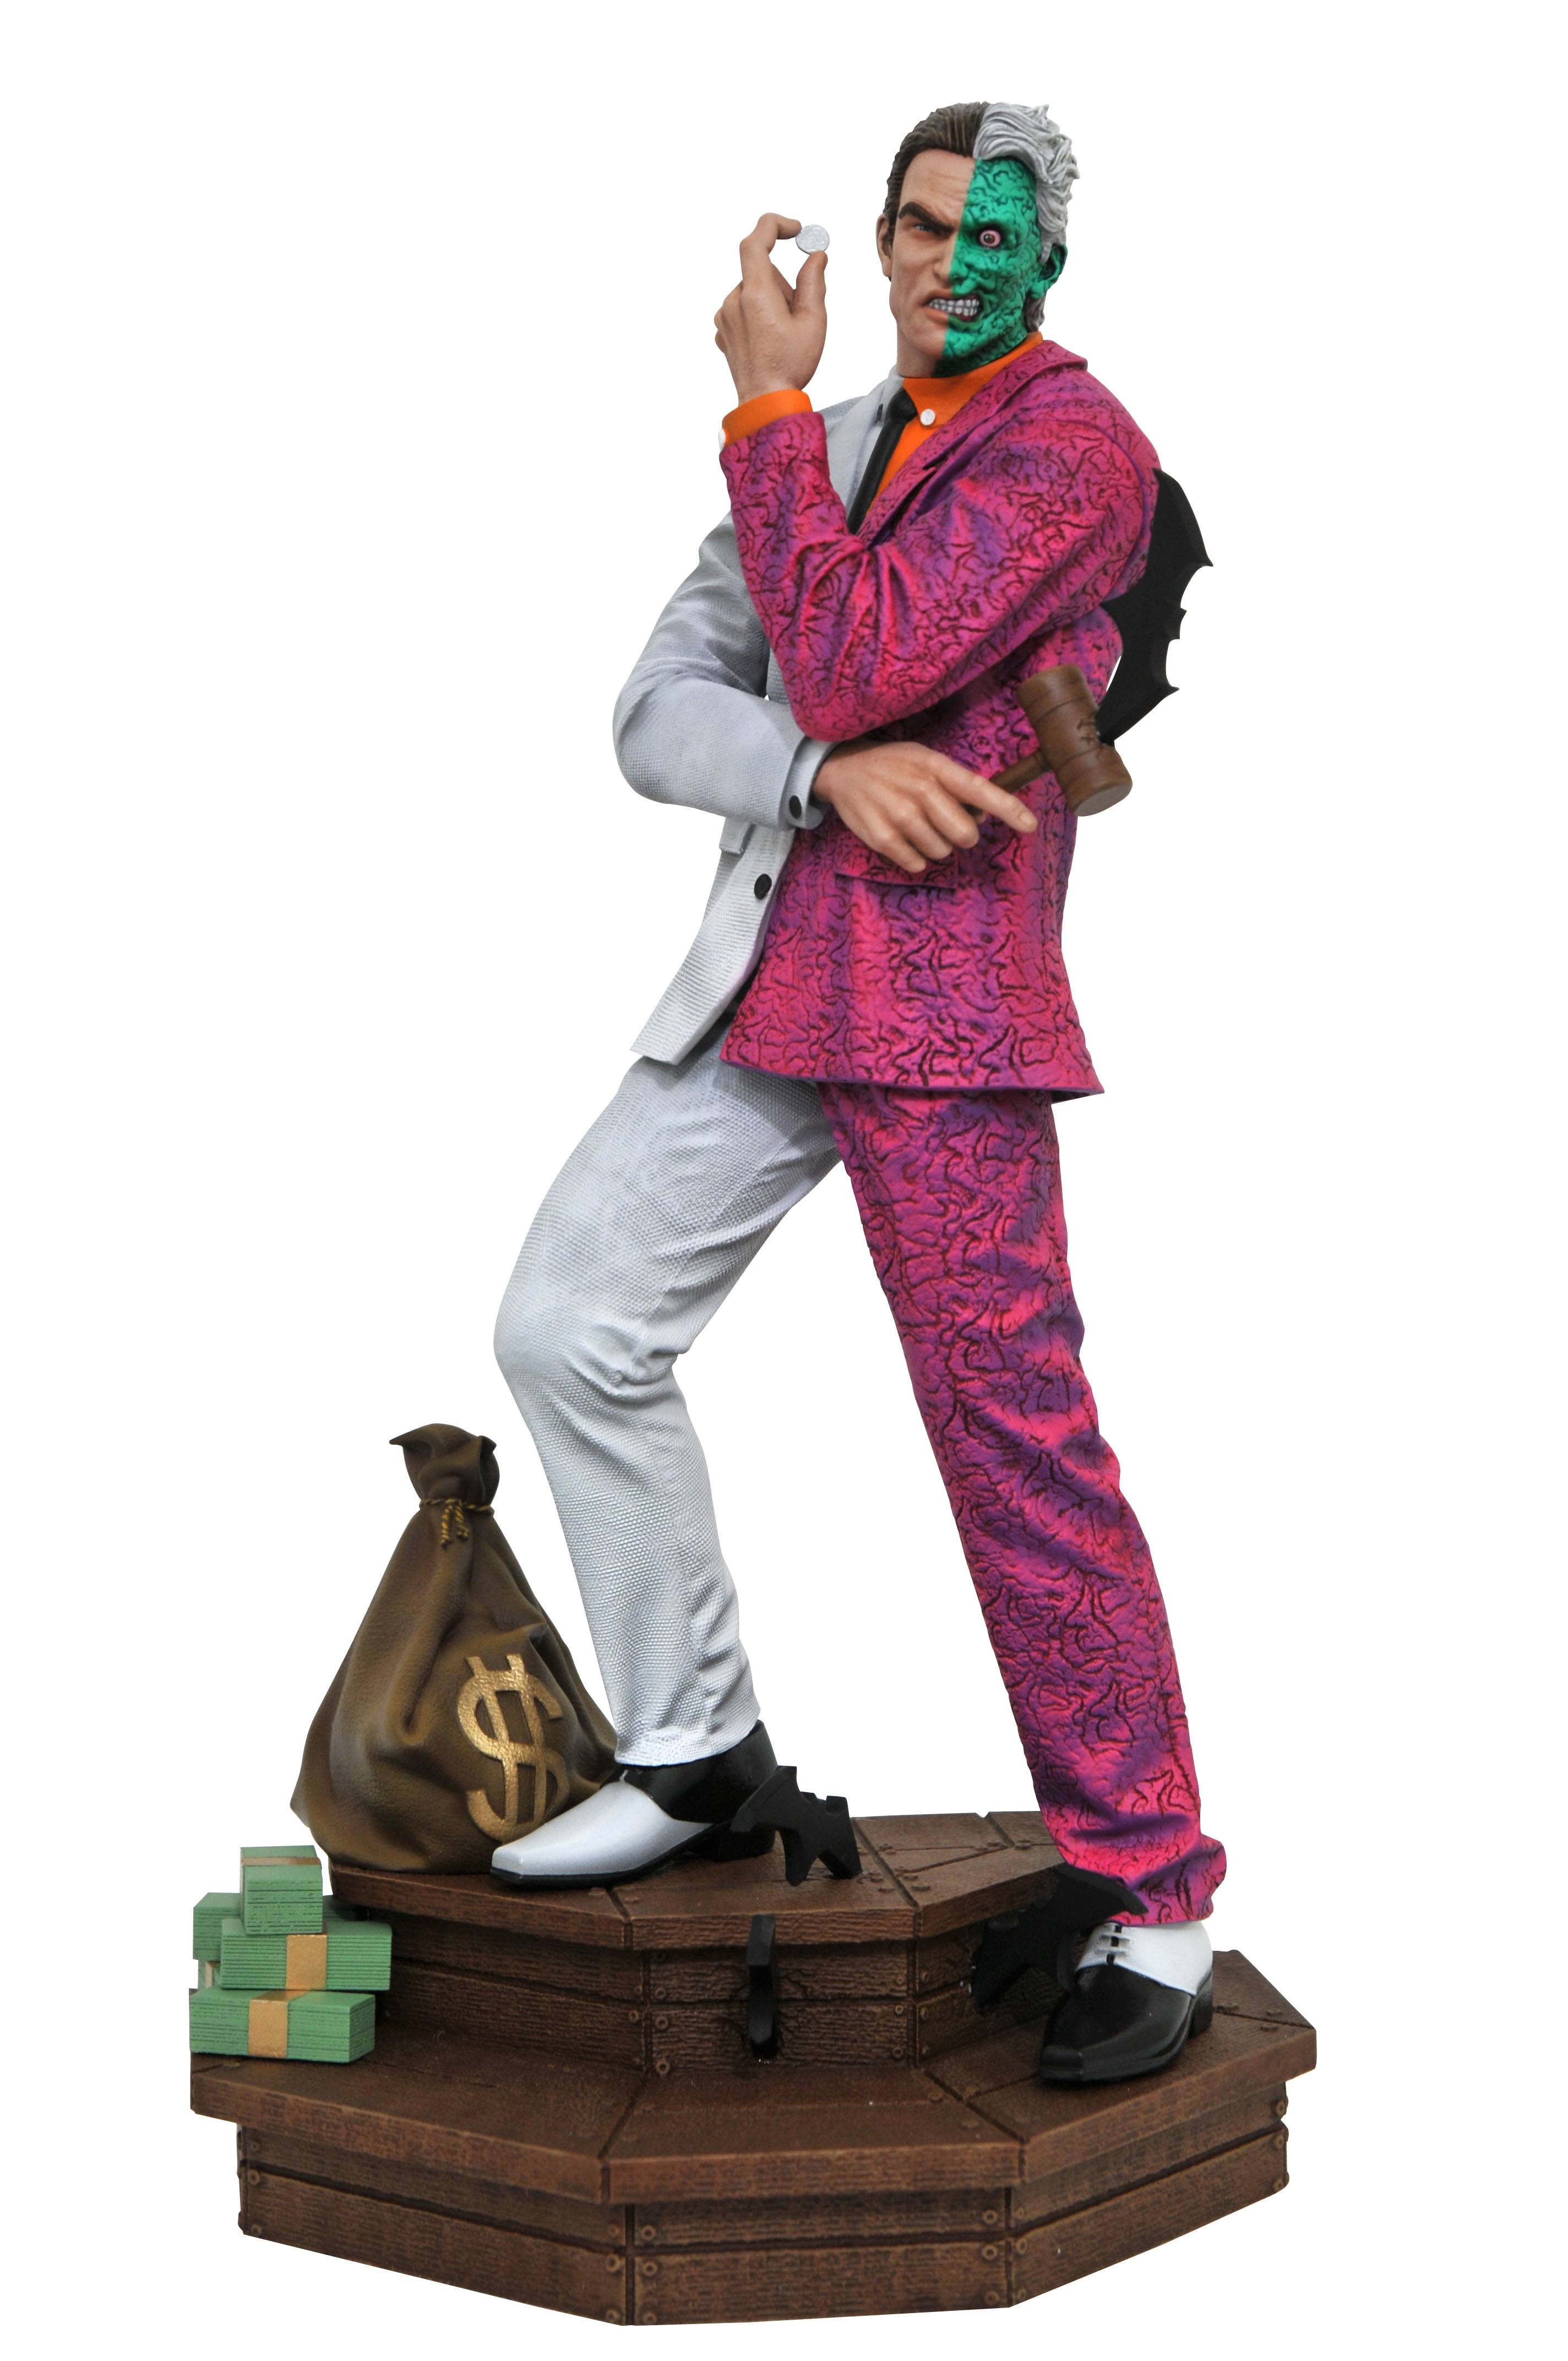 DC GALLERY TWO FACE PVC STATUE PREORDER AUG 26 2020